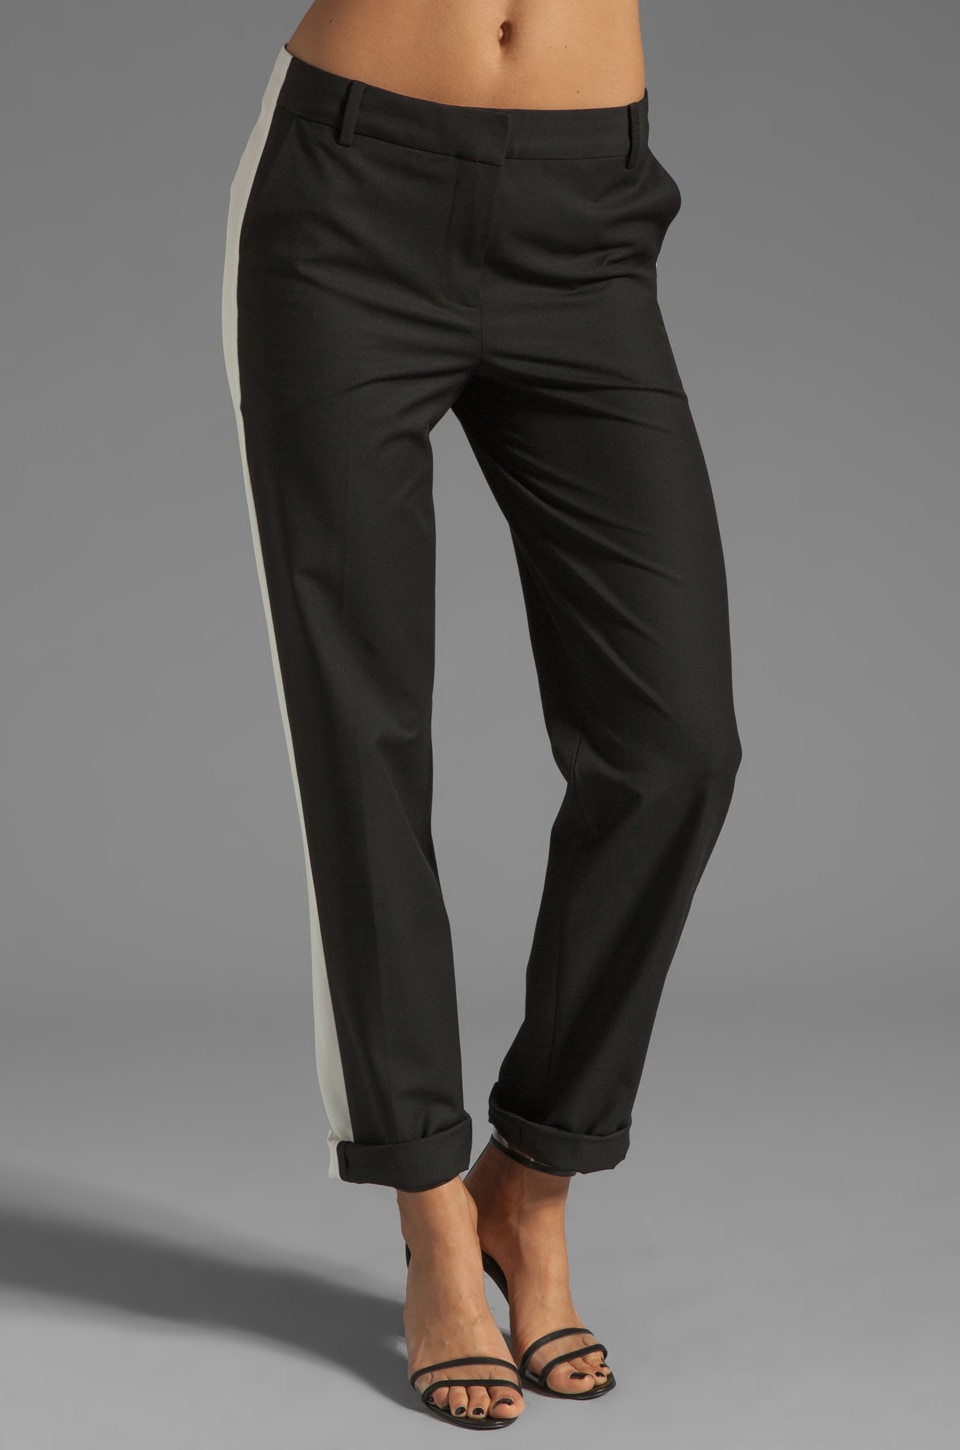 Elizabeth and James Marlene Tuxedo Trouser in Black/Ivory